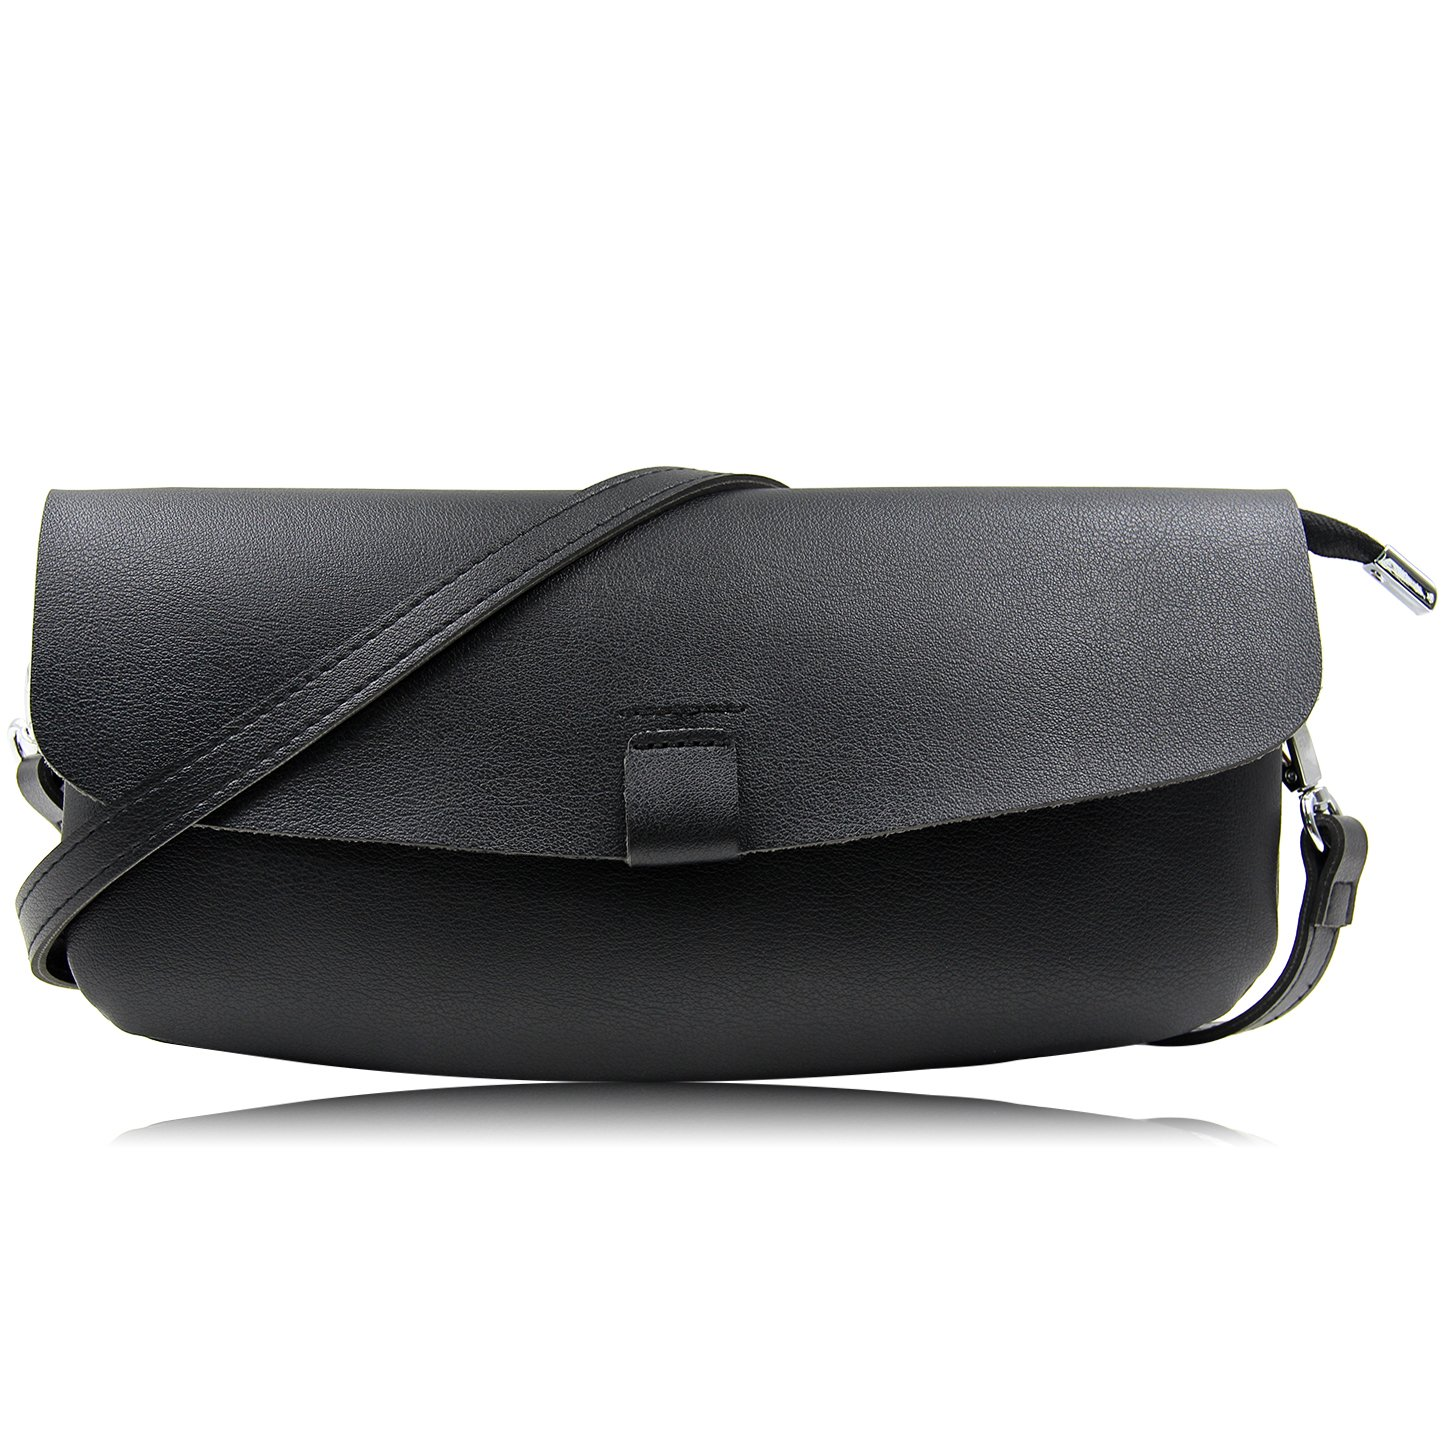 Oversized Faux Leather Clutches Women Casual Envelope Evening Clutch Bag Purses And Handbags With Wristlet And Shoulder Strap (Black)